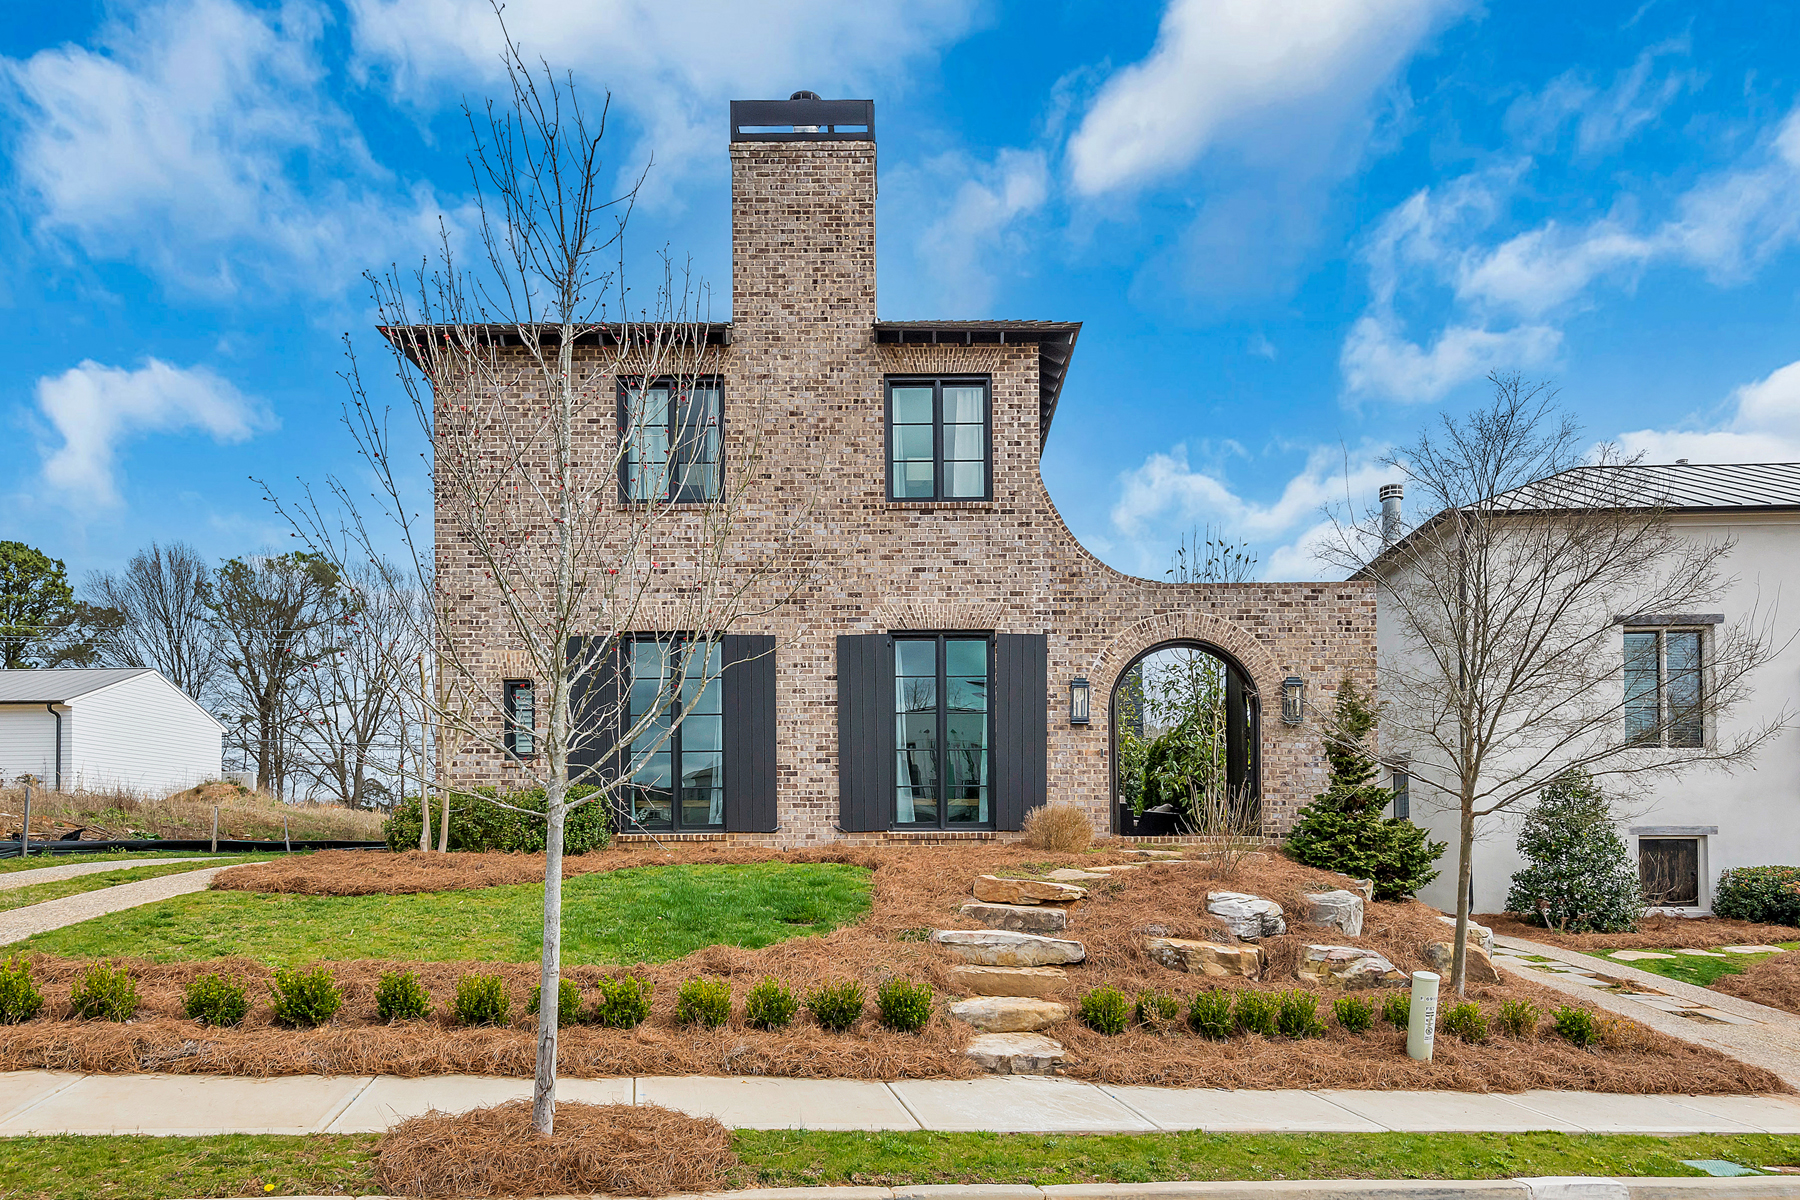 Single Family Homes for Sale at Charming Mediterranean 6905 Colfax Avenue Cumming, Georgia 30040 United States